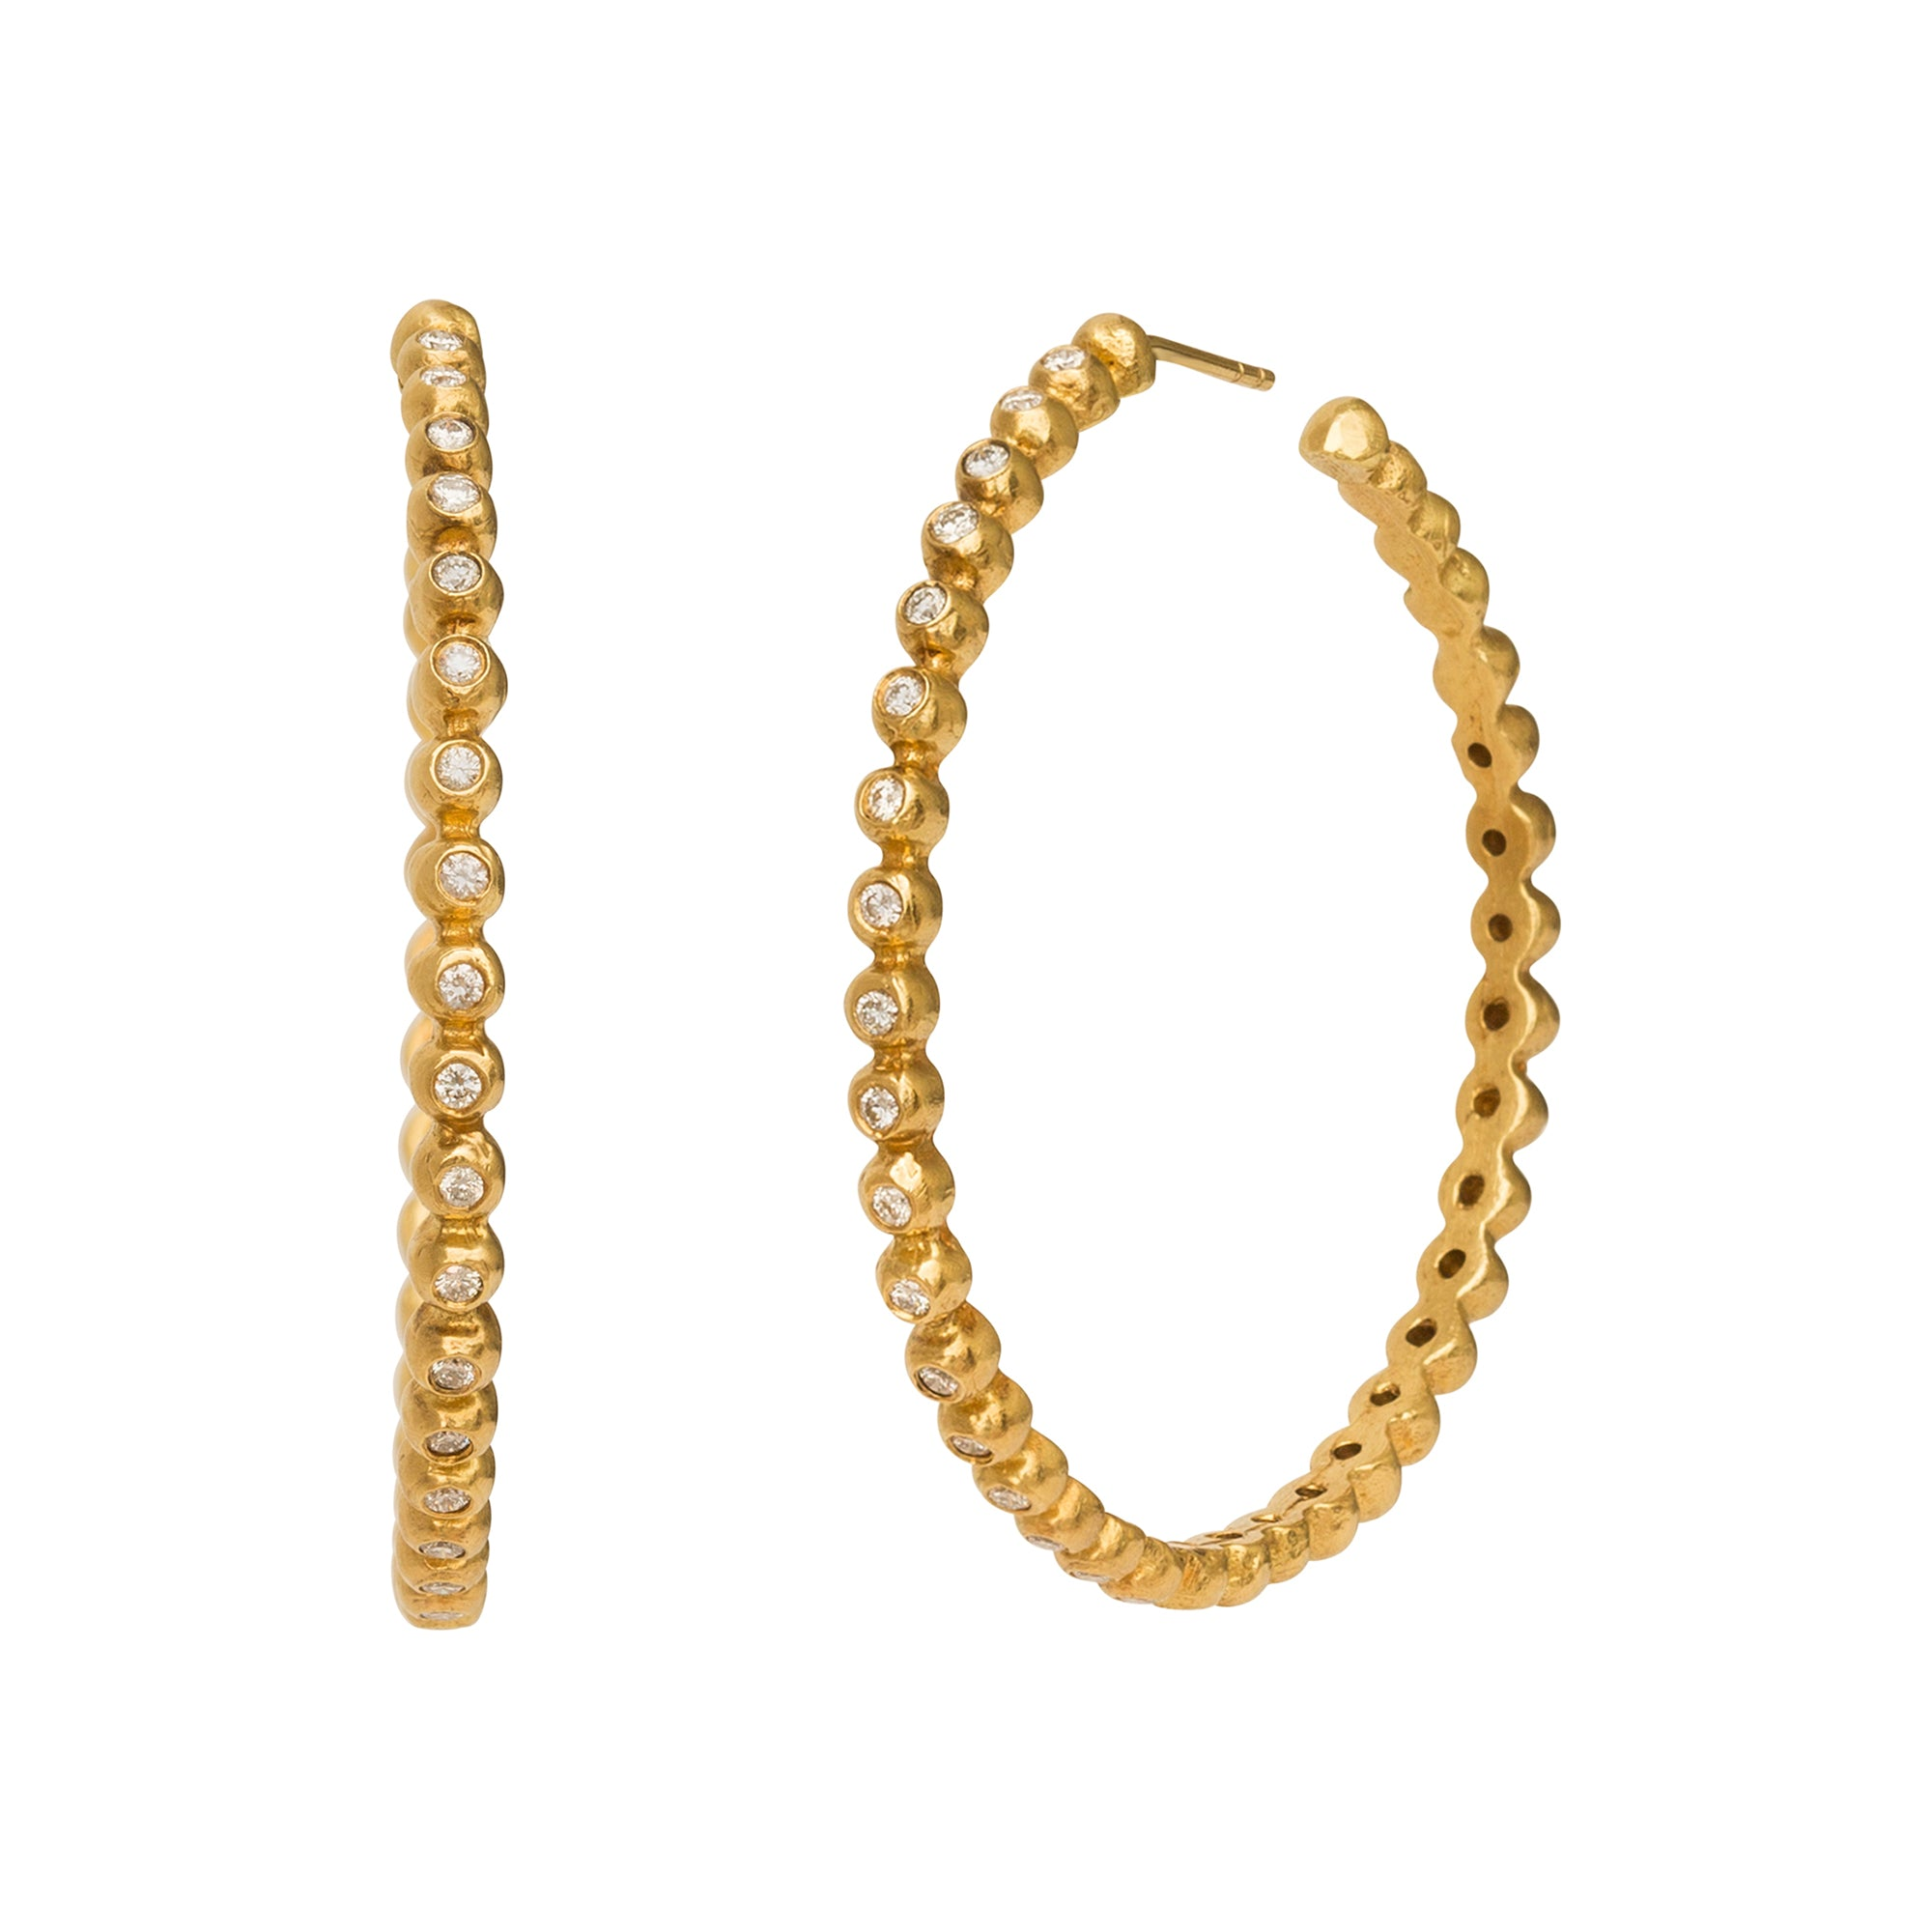 Gold Diamond Hoops by Broken English Jewelry